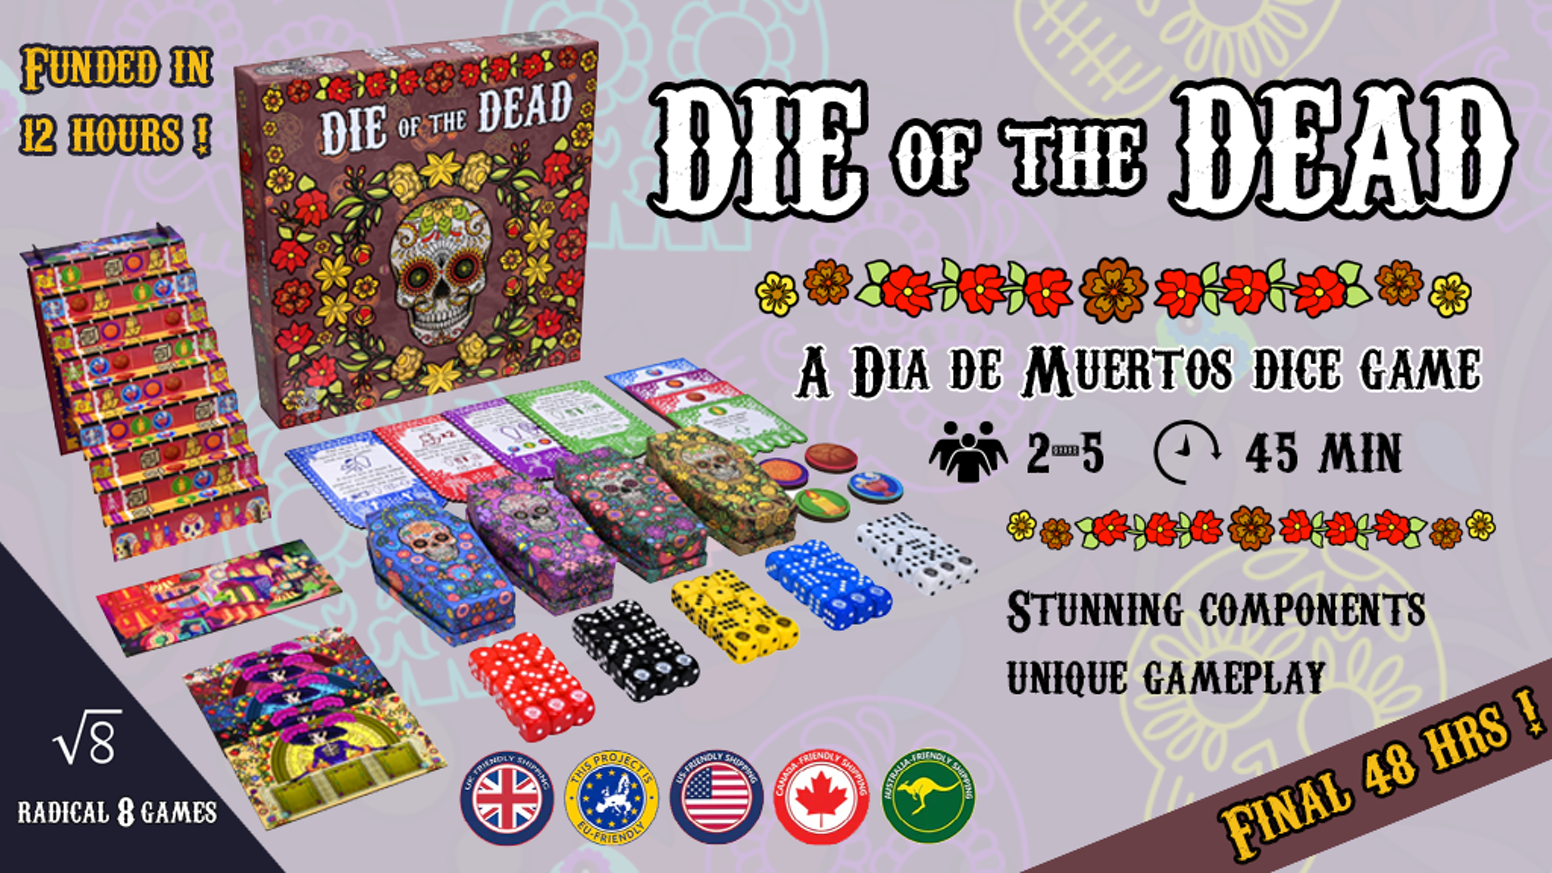 Guide souls back to the land of the living in this Día de Muertos themed dice game featuring beautiful components and unique gameplay.